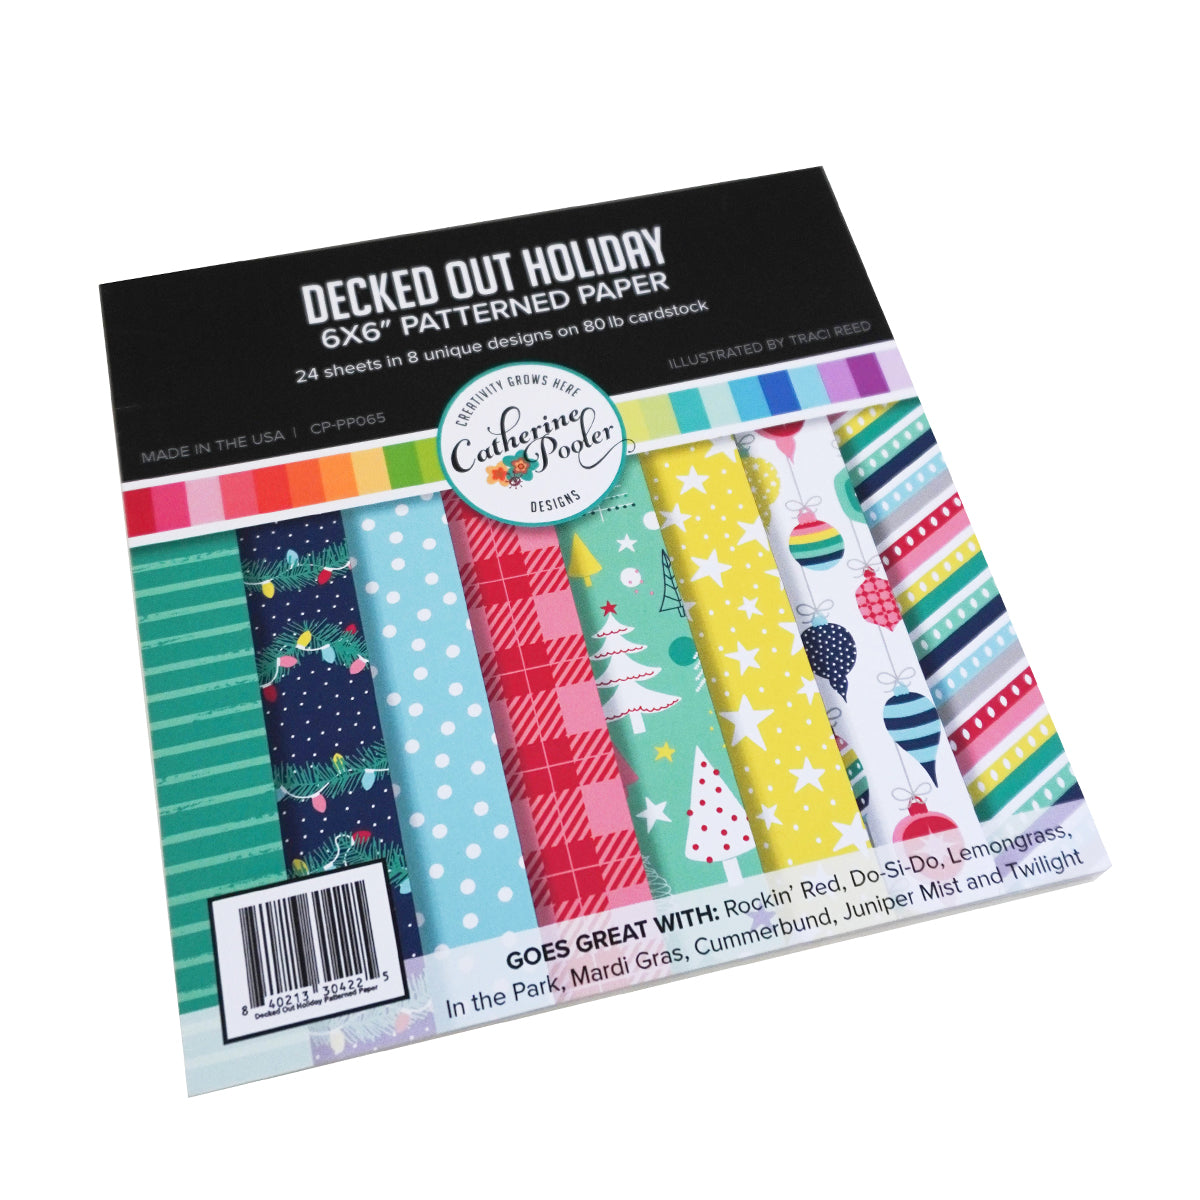 Catherine Pooler Designs Decked Out Holiday Patterned Paper